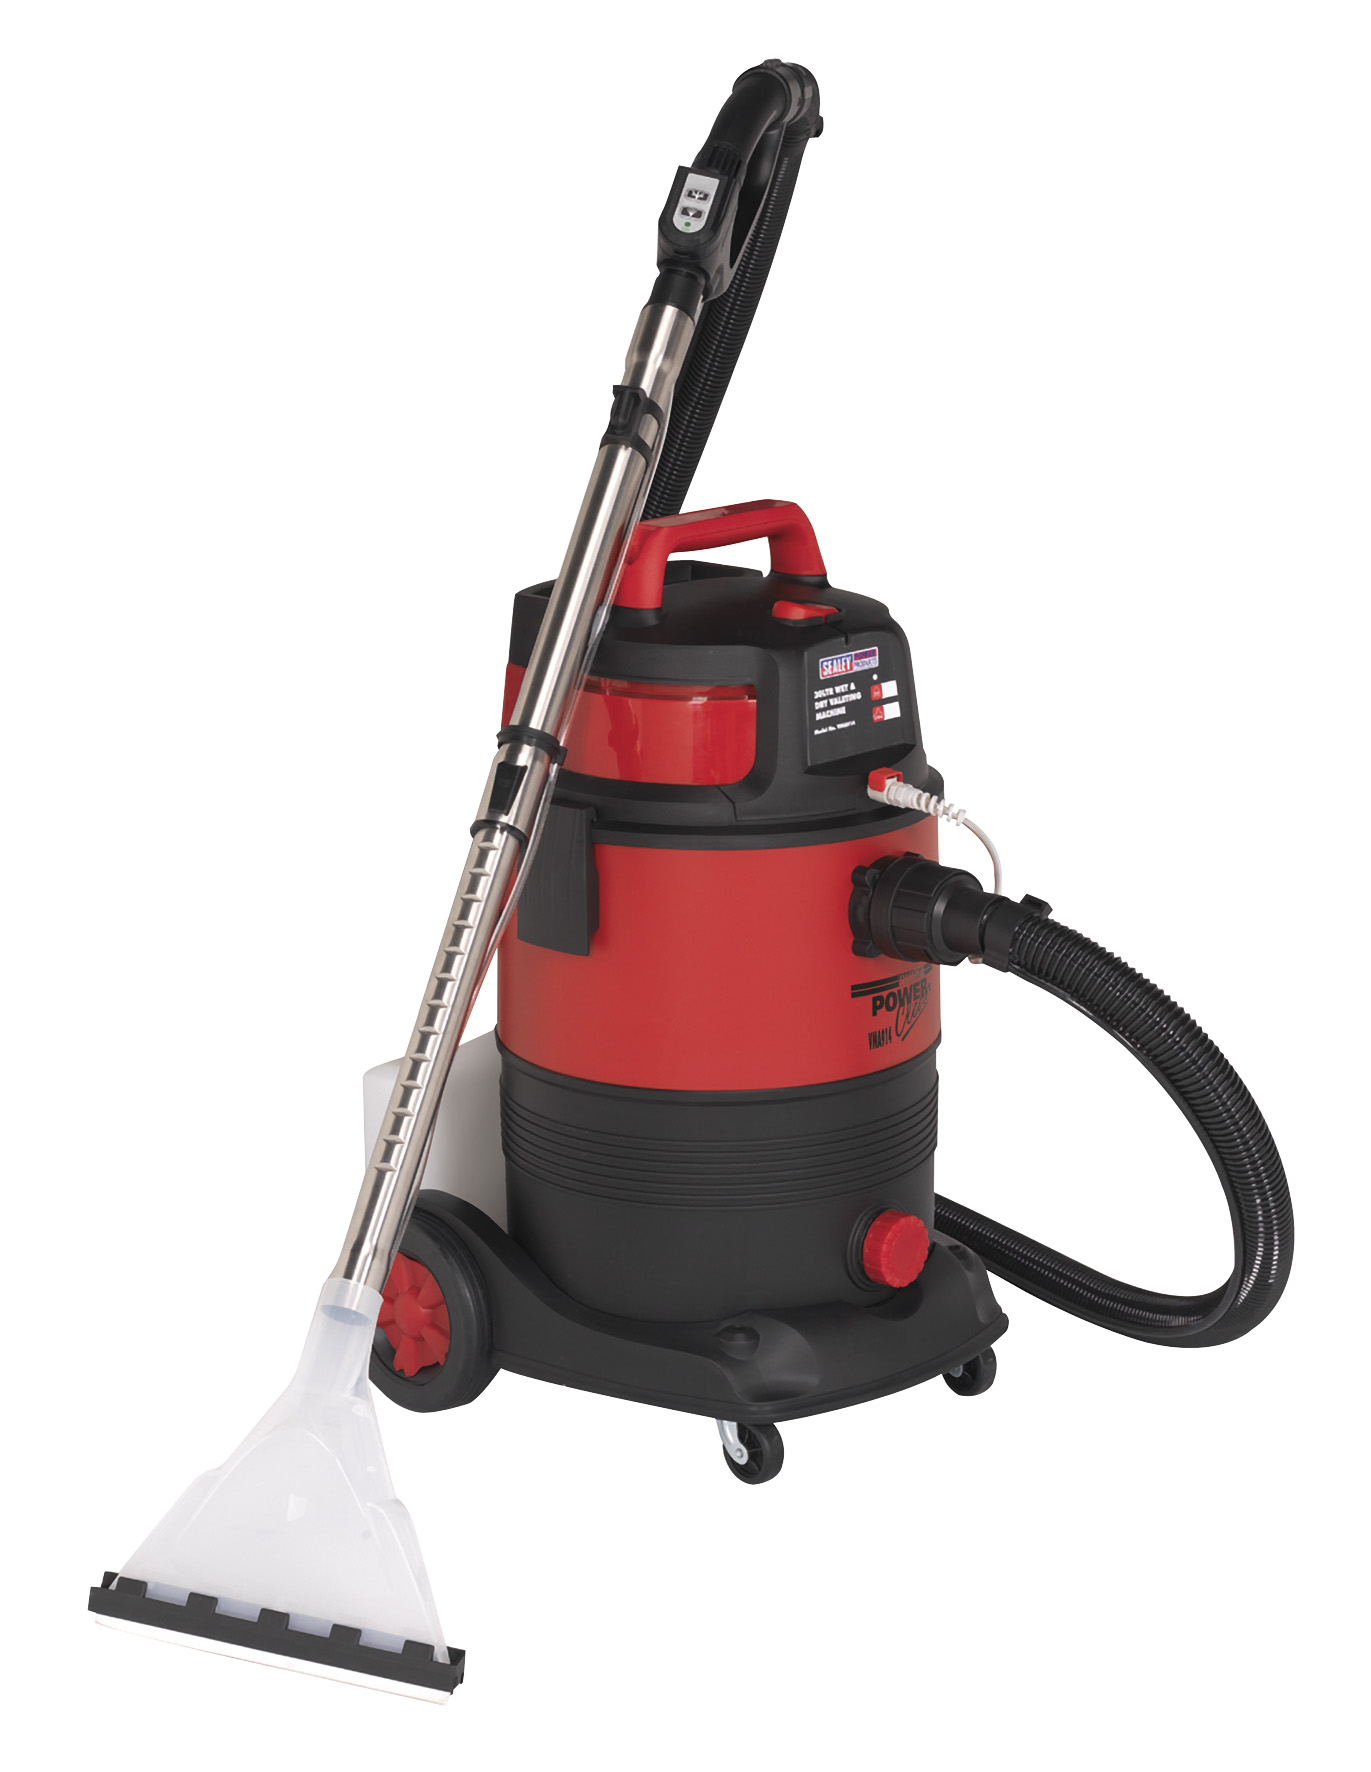 Sealey Valeting Machine Wet Dry 30L Hoover Vacuum Cleaner